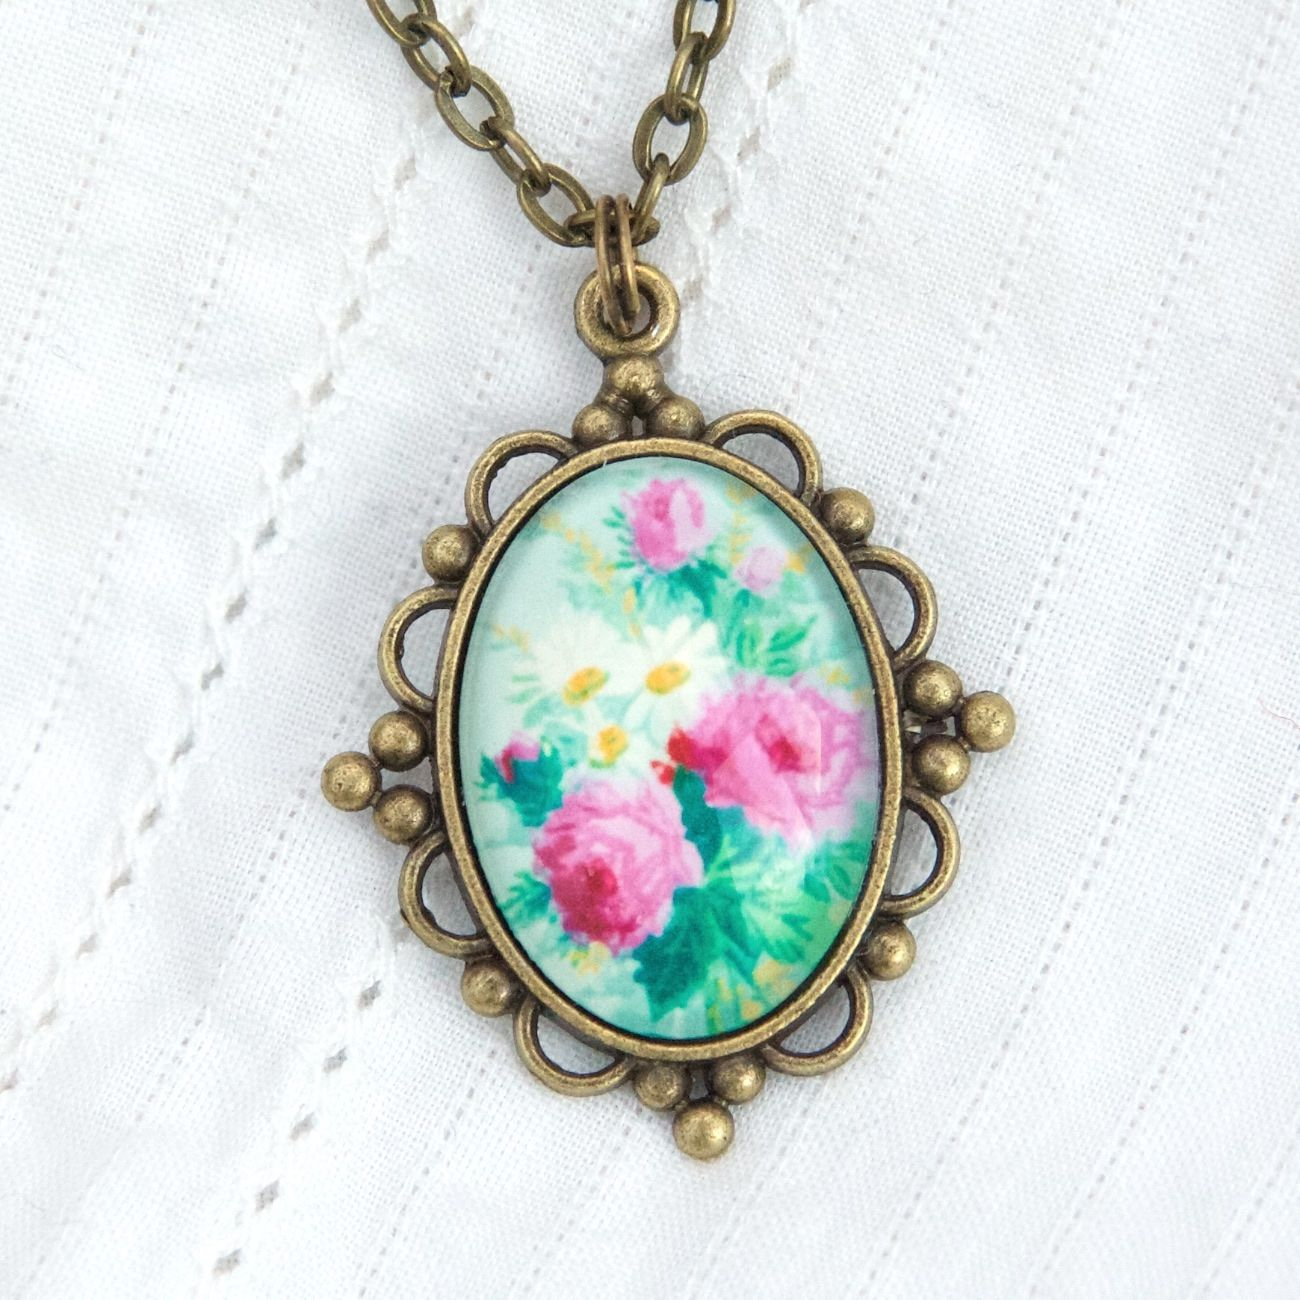 Victorian 'Arsenical wallpaper' floral oval pendant